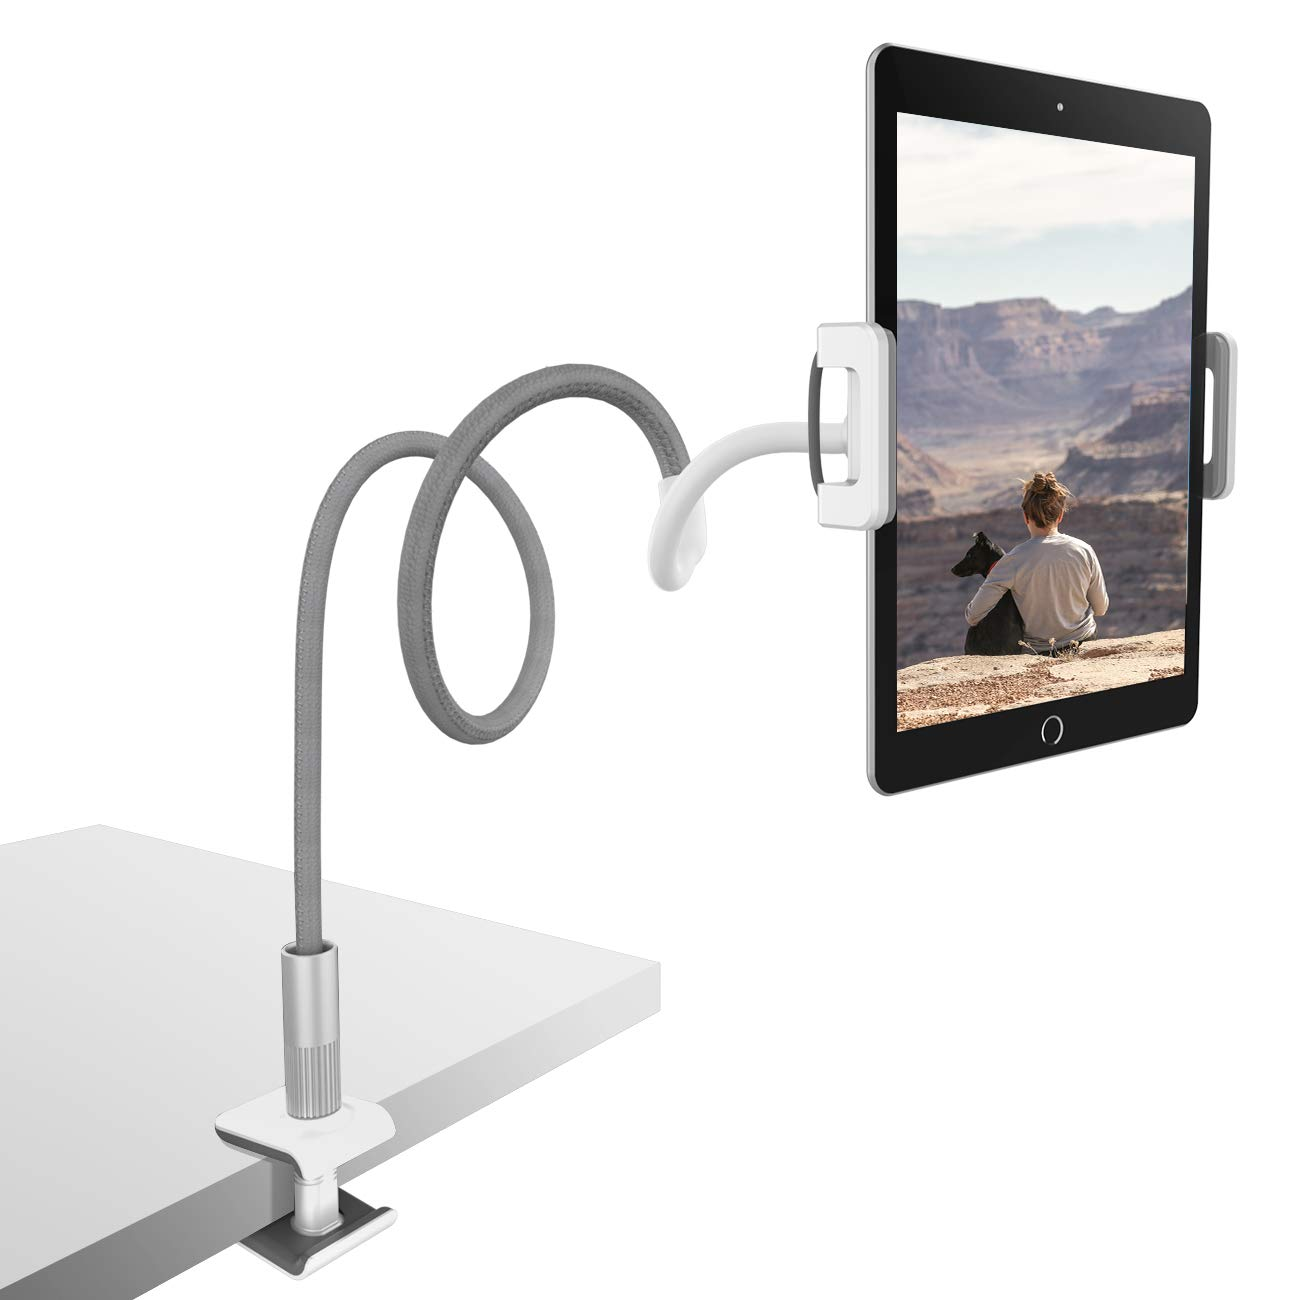 Sensational Lamicall Gooseneck Tablet Holder Universal Tablet Stand 360 Flexible Lazy Arm Holder Clamp Mount Bracket Bed For 4 7 10 5 Pad Air Pro Mini Interior Design Ideas Oteneahmetsinanyavuzinfo